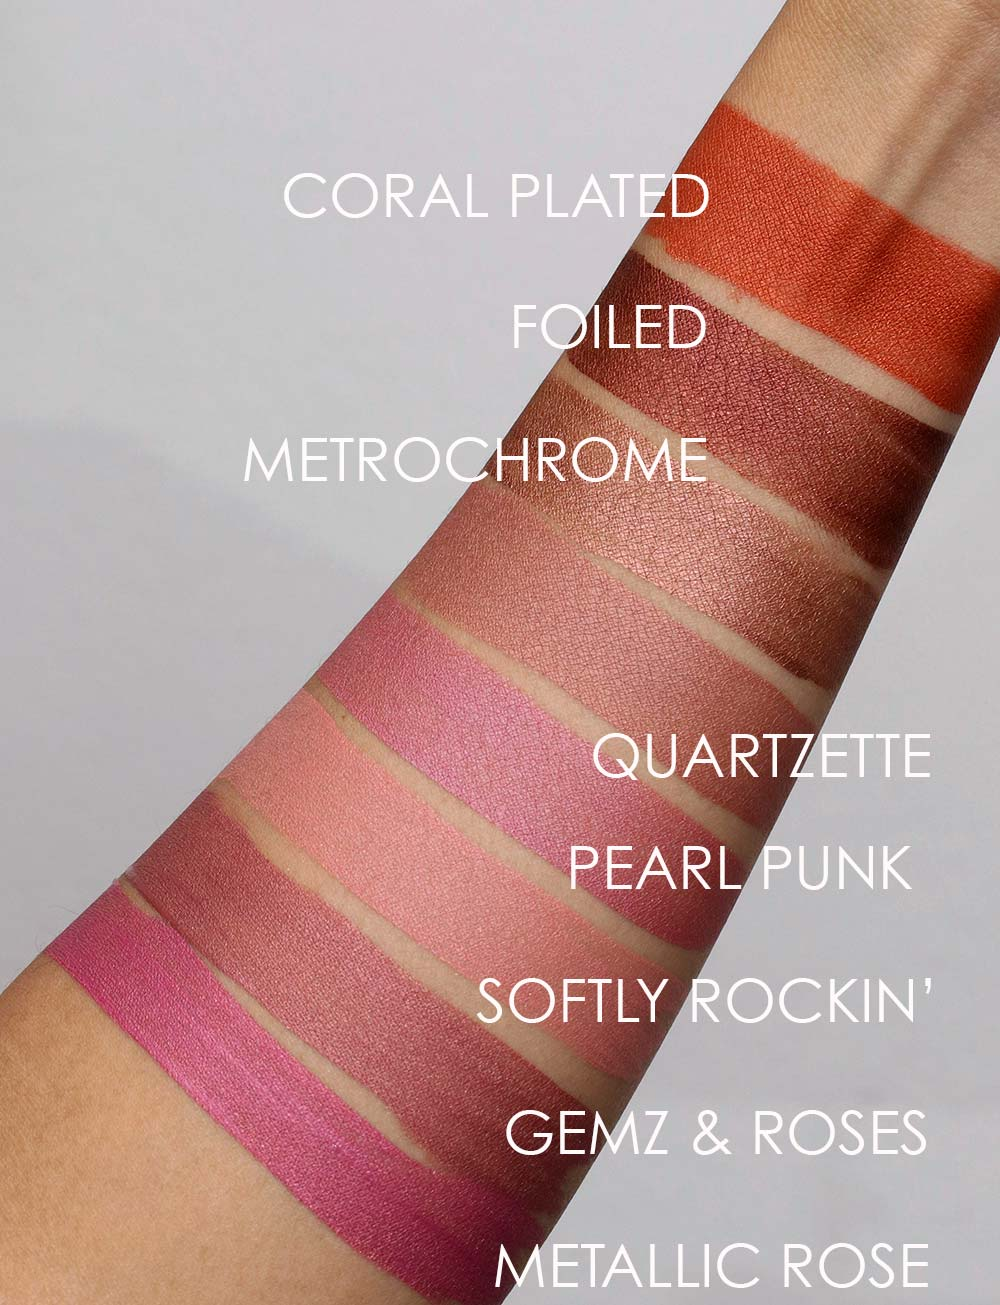 mac retromatte liquid lipcolour swatches 1